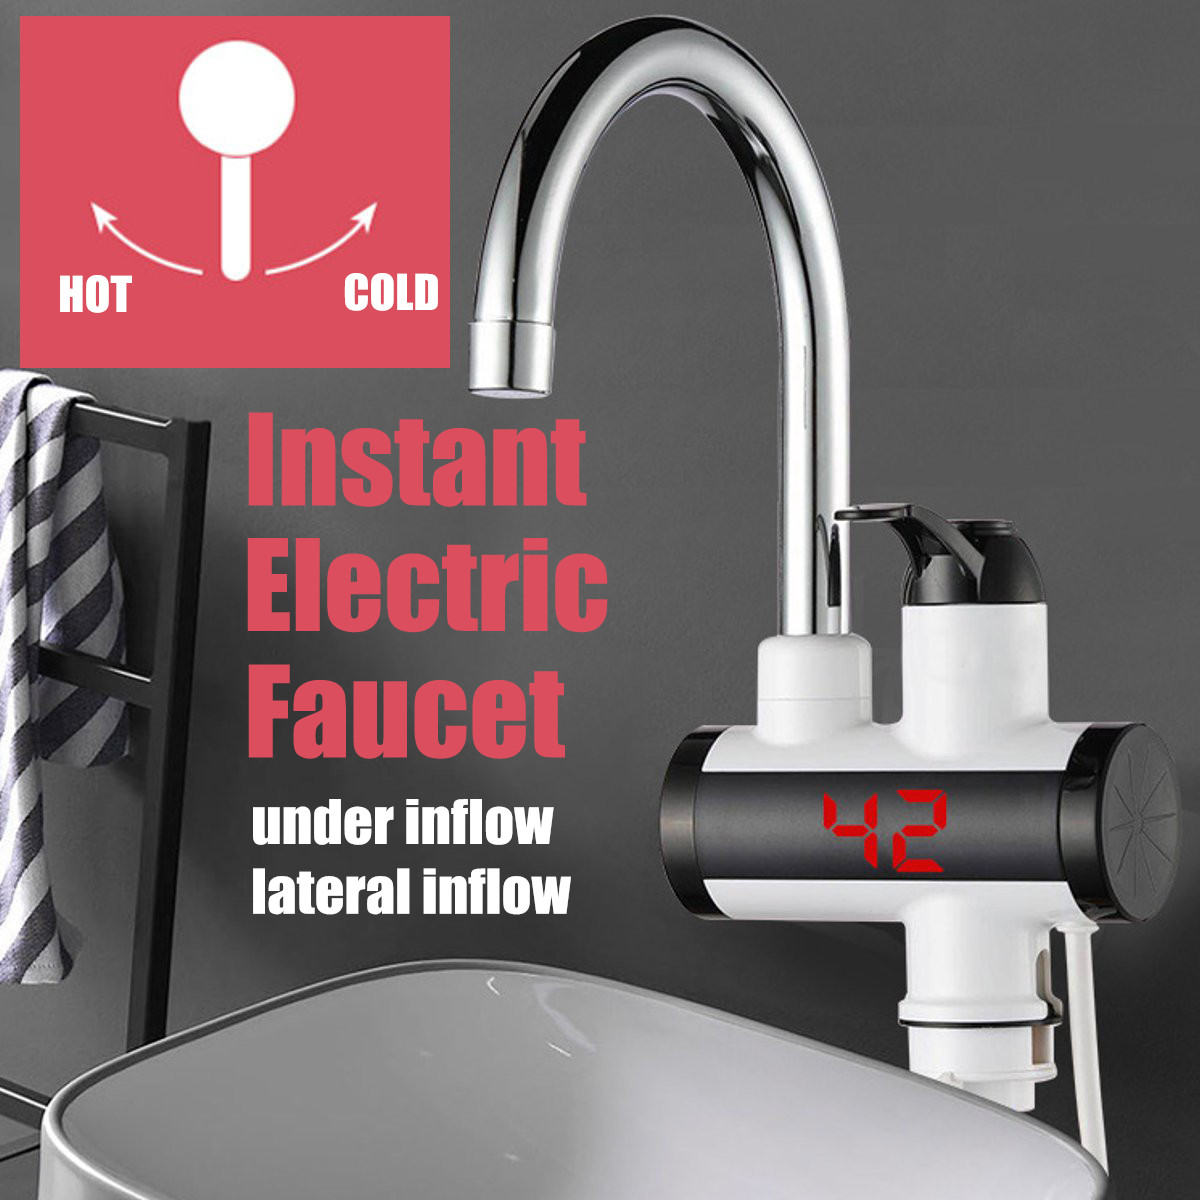 Home Instant Electric Faucet Tap Hot Water Heater 220V 3000W LED Display Bathroom Kitchen Under Inflow/Lateral Inflow IPX4